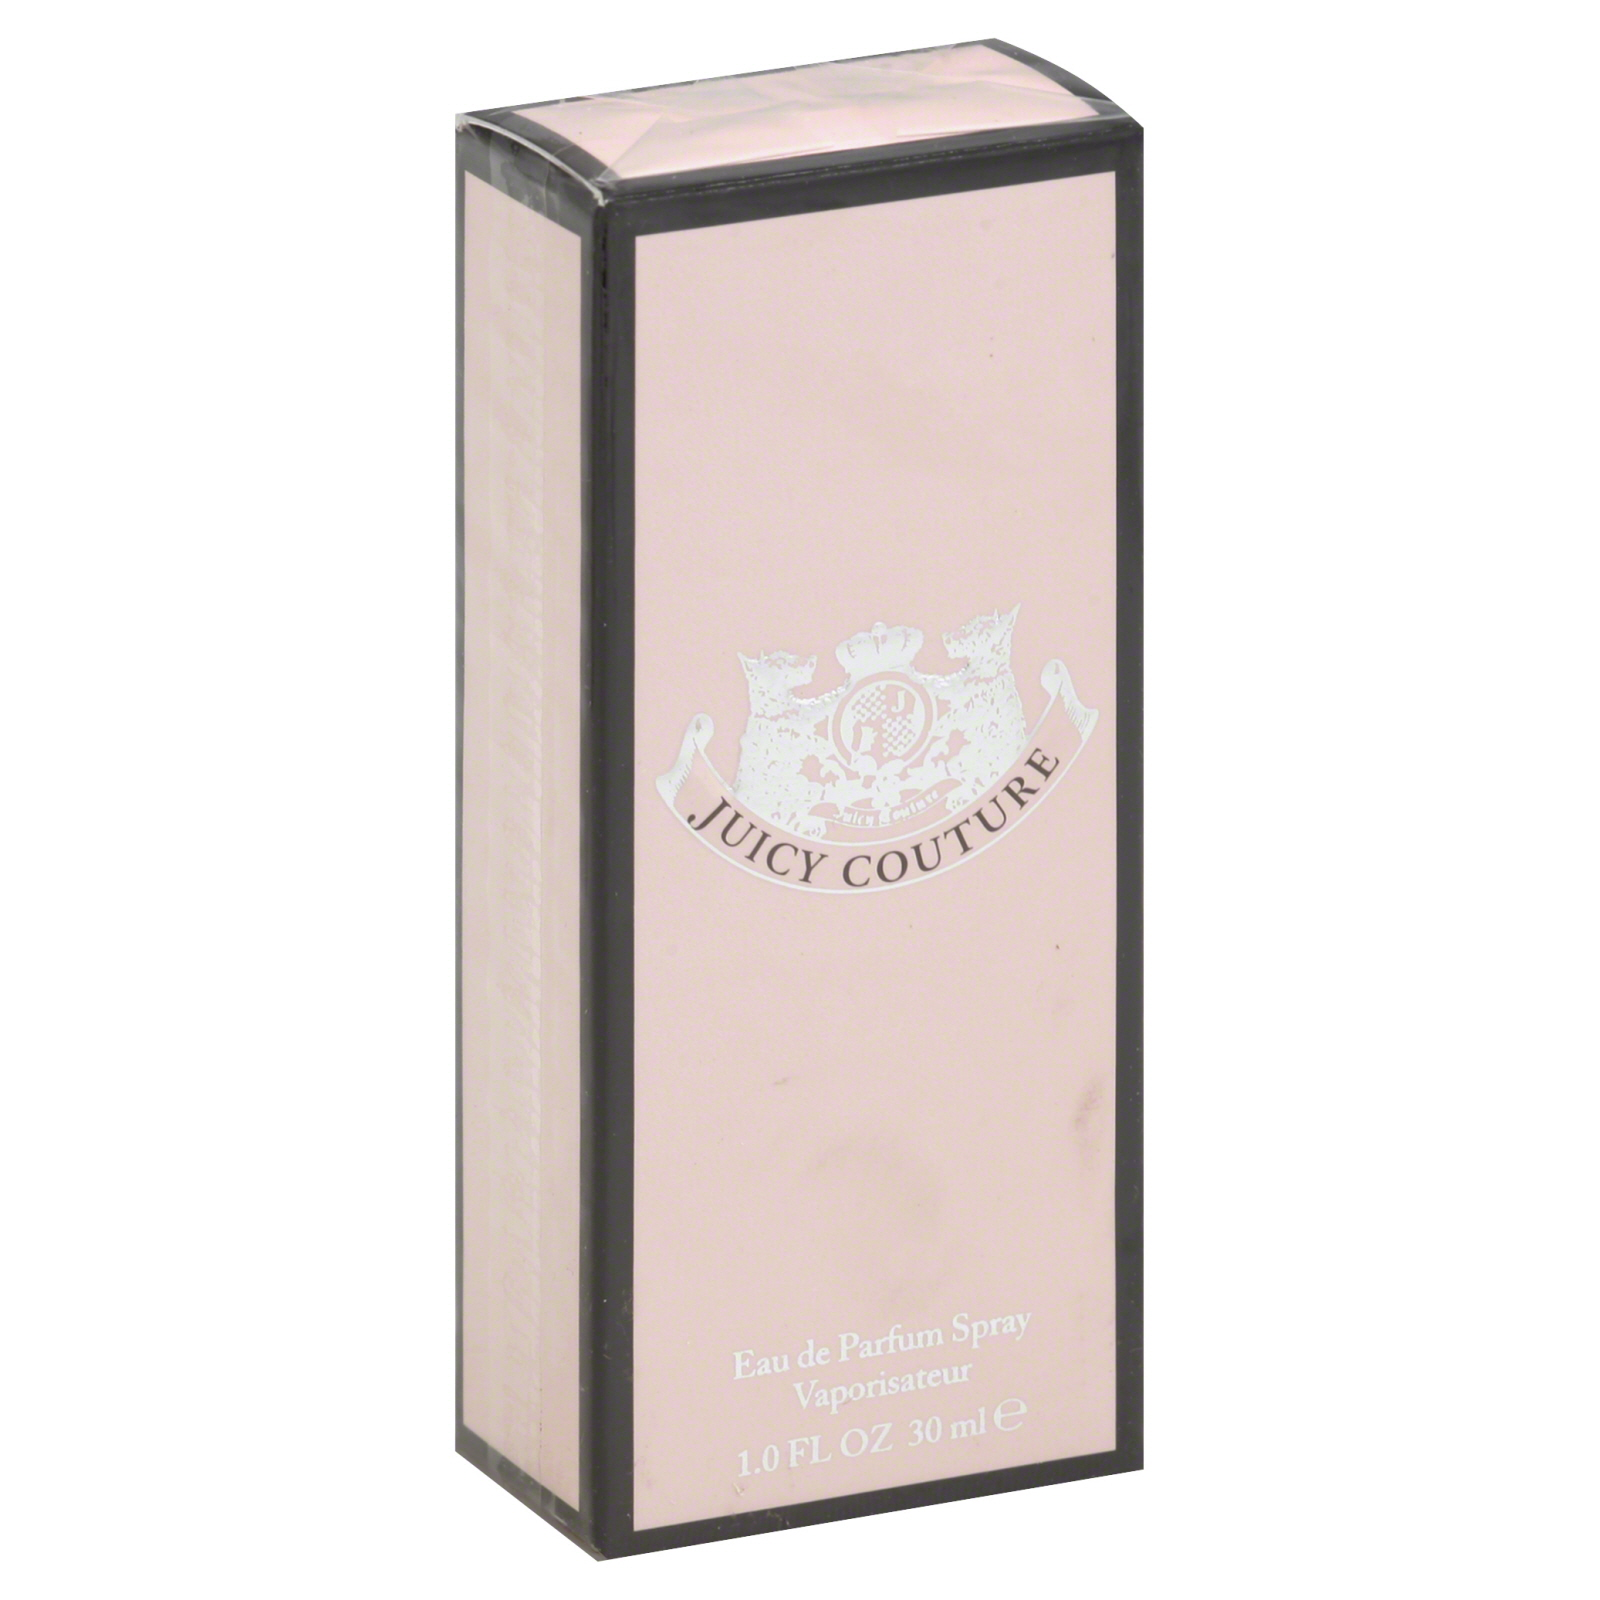 Eau de Parfum Spray, 1 fl oz (30 ml)